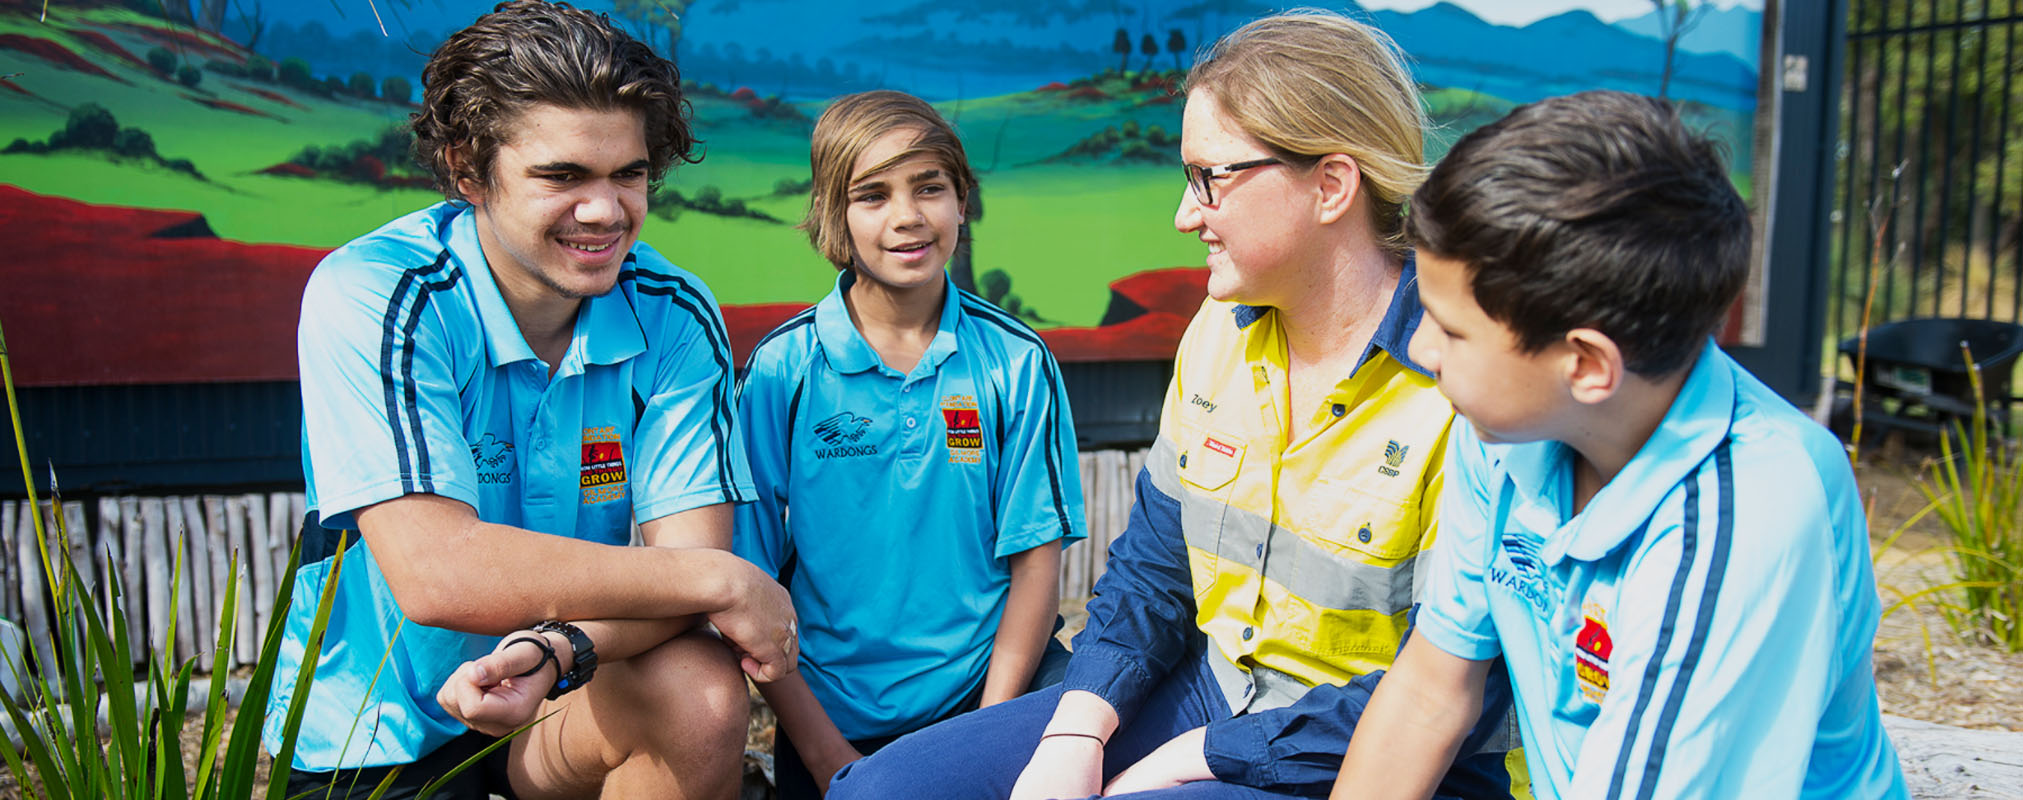 Community partnerships   Through its businesses, Wesfarmers Chemicals, Energy & Fertilisers has been an activate participant in the communities in which we operate for over 100 years.